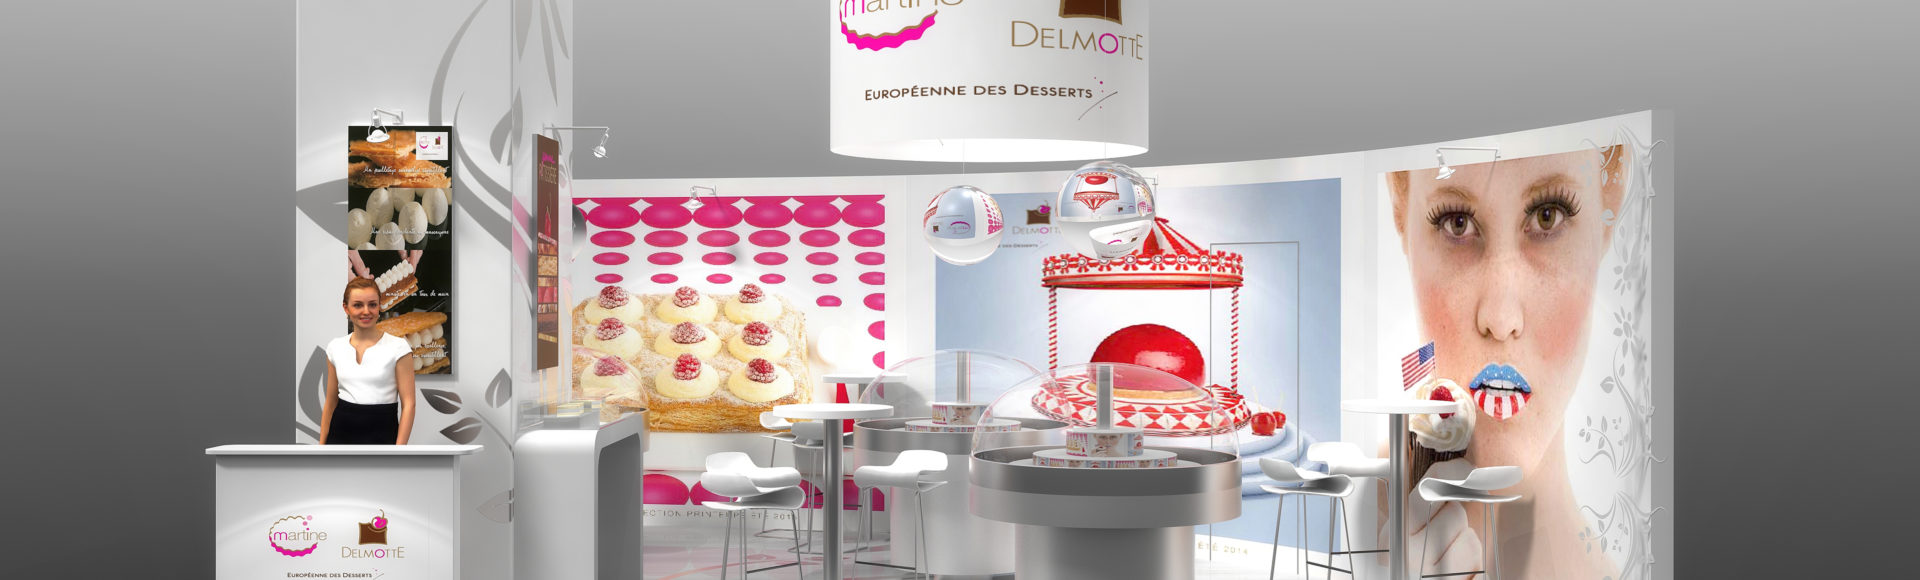 Stand patisseries Martine Delmotte